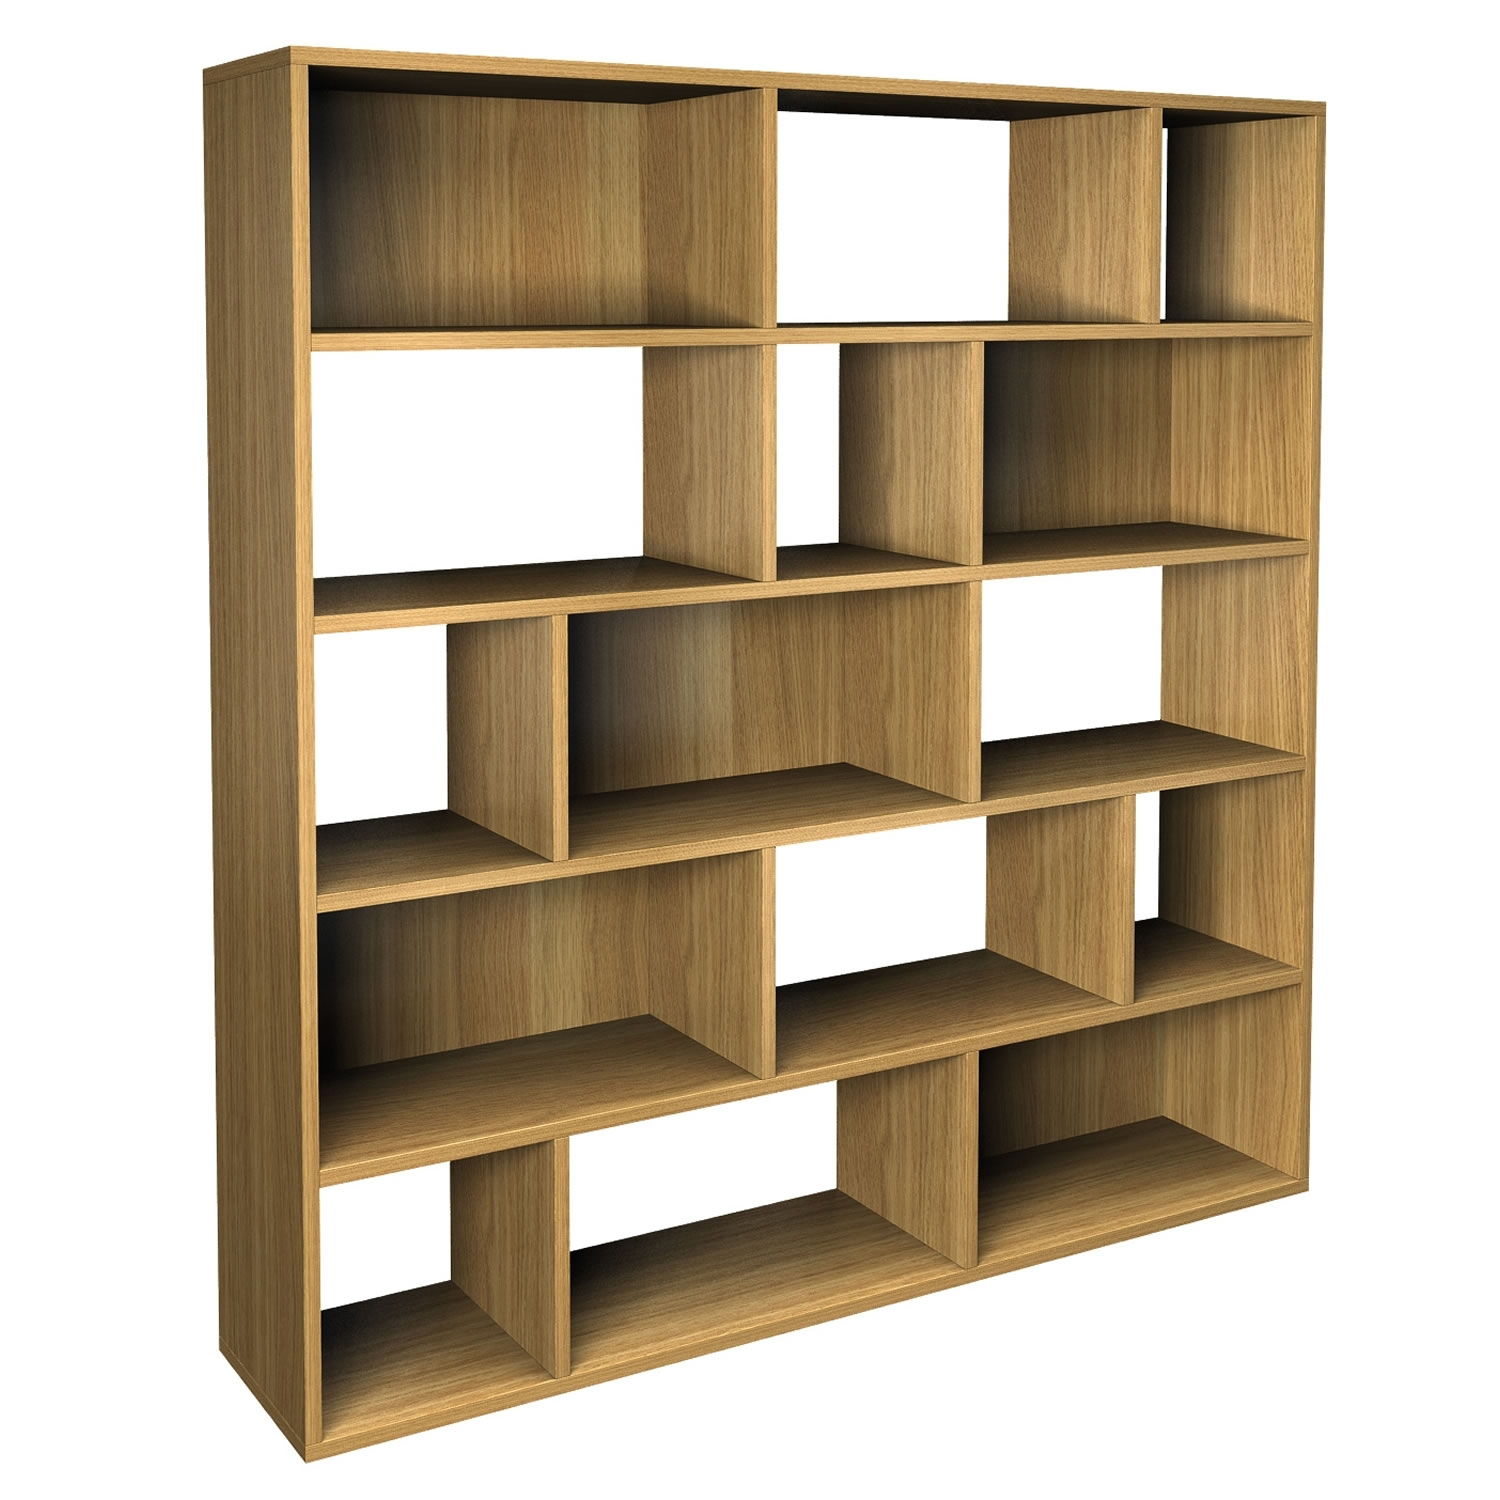 Furniture Simple Stylish Designs Pictures Of Creative Bookshelf Inside Large Bookshelf Units (#6 of 15)